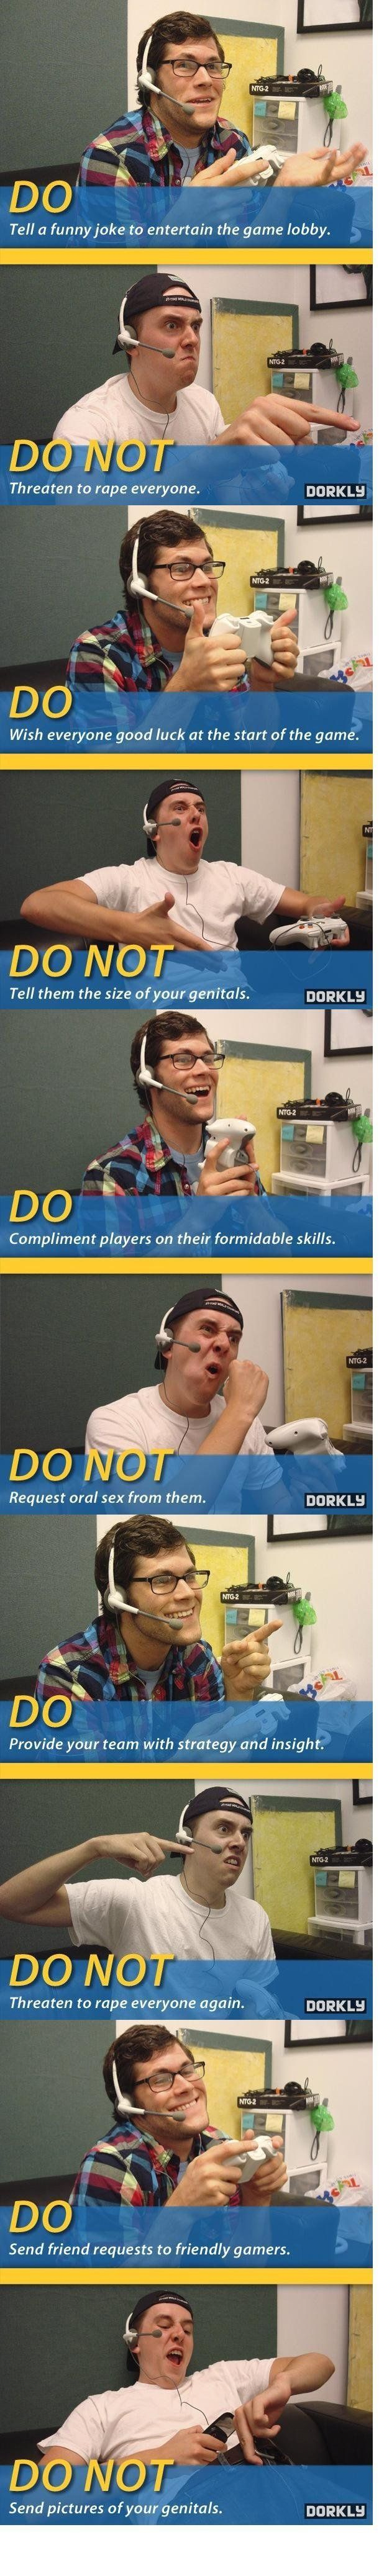 Tips on Xbox Live Etiquette